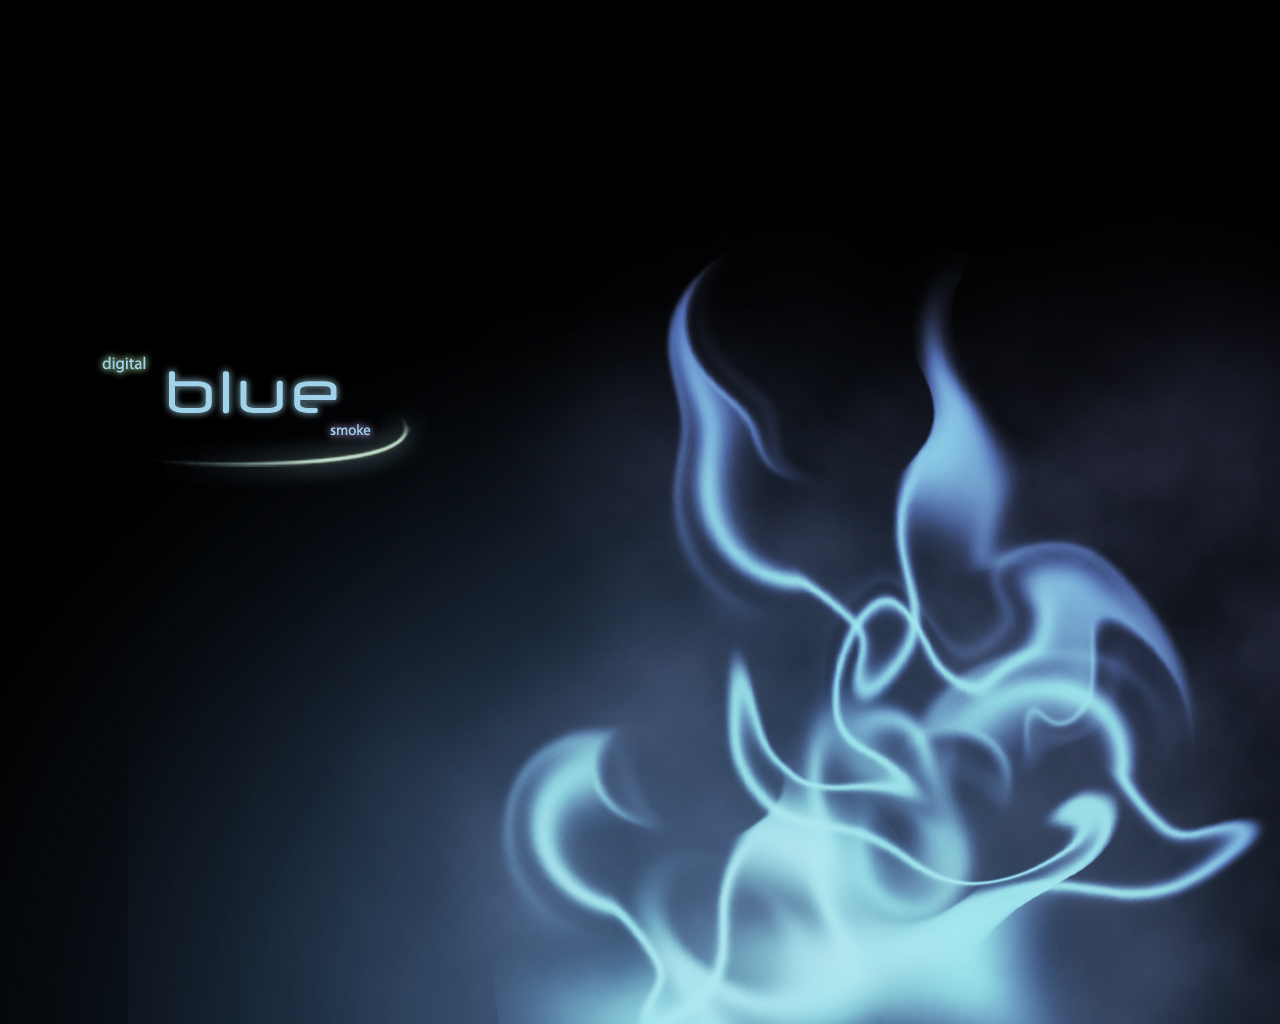 blue-smoke-redline-redapple-9199.jpg